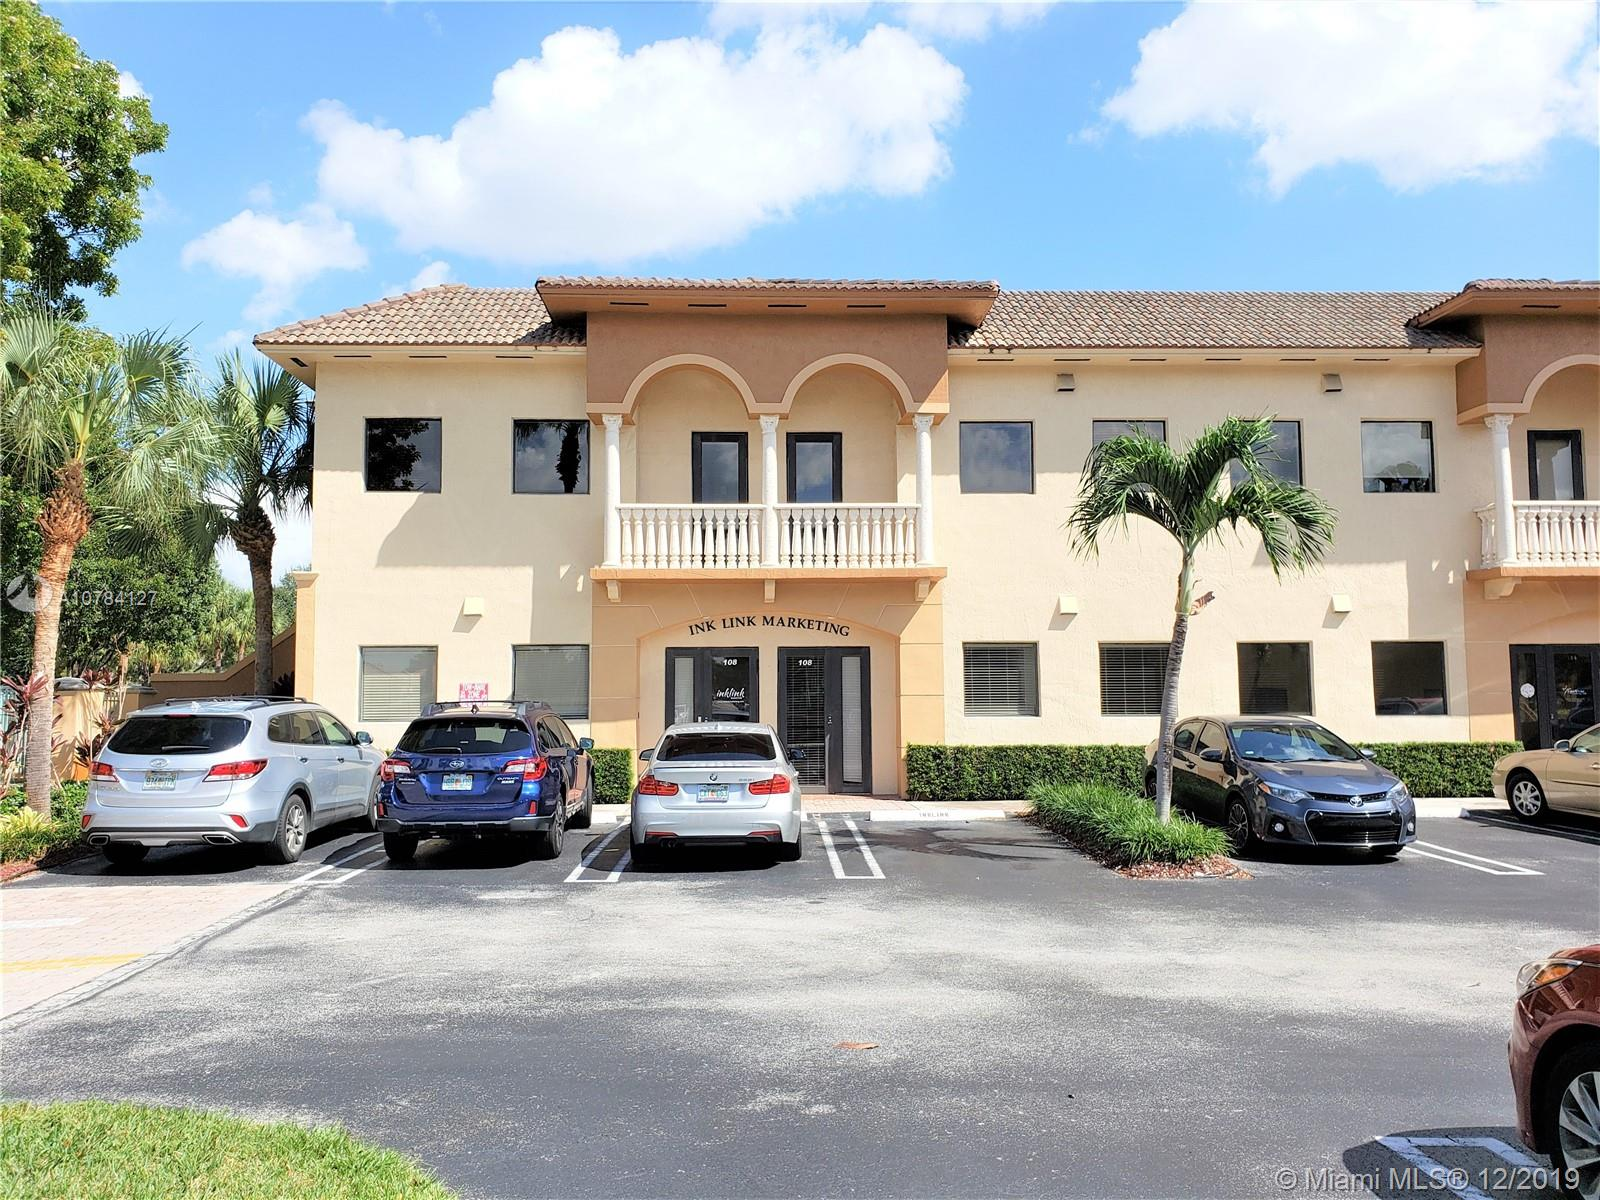 7950 NW 155th St 101, Miami Lakes, FL 33016